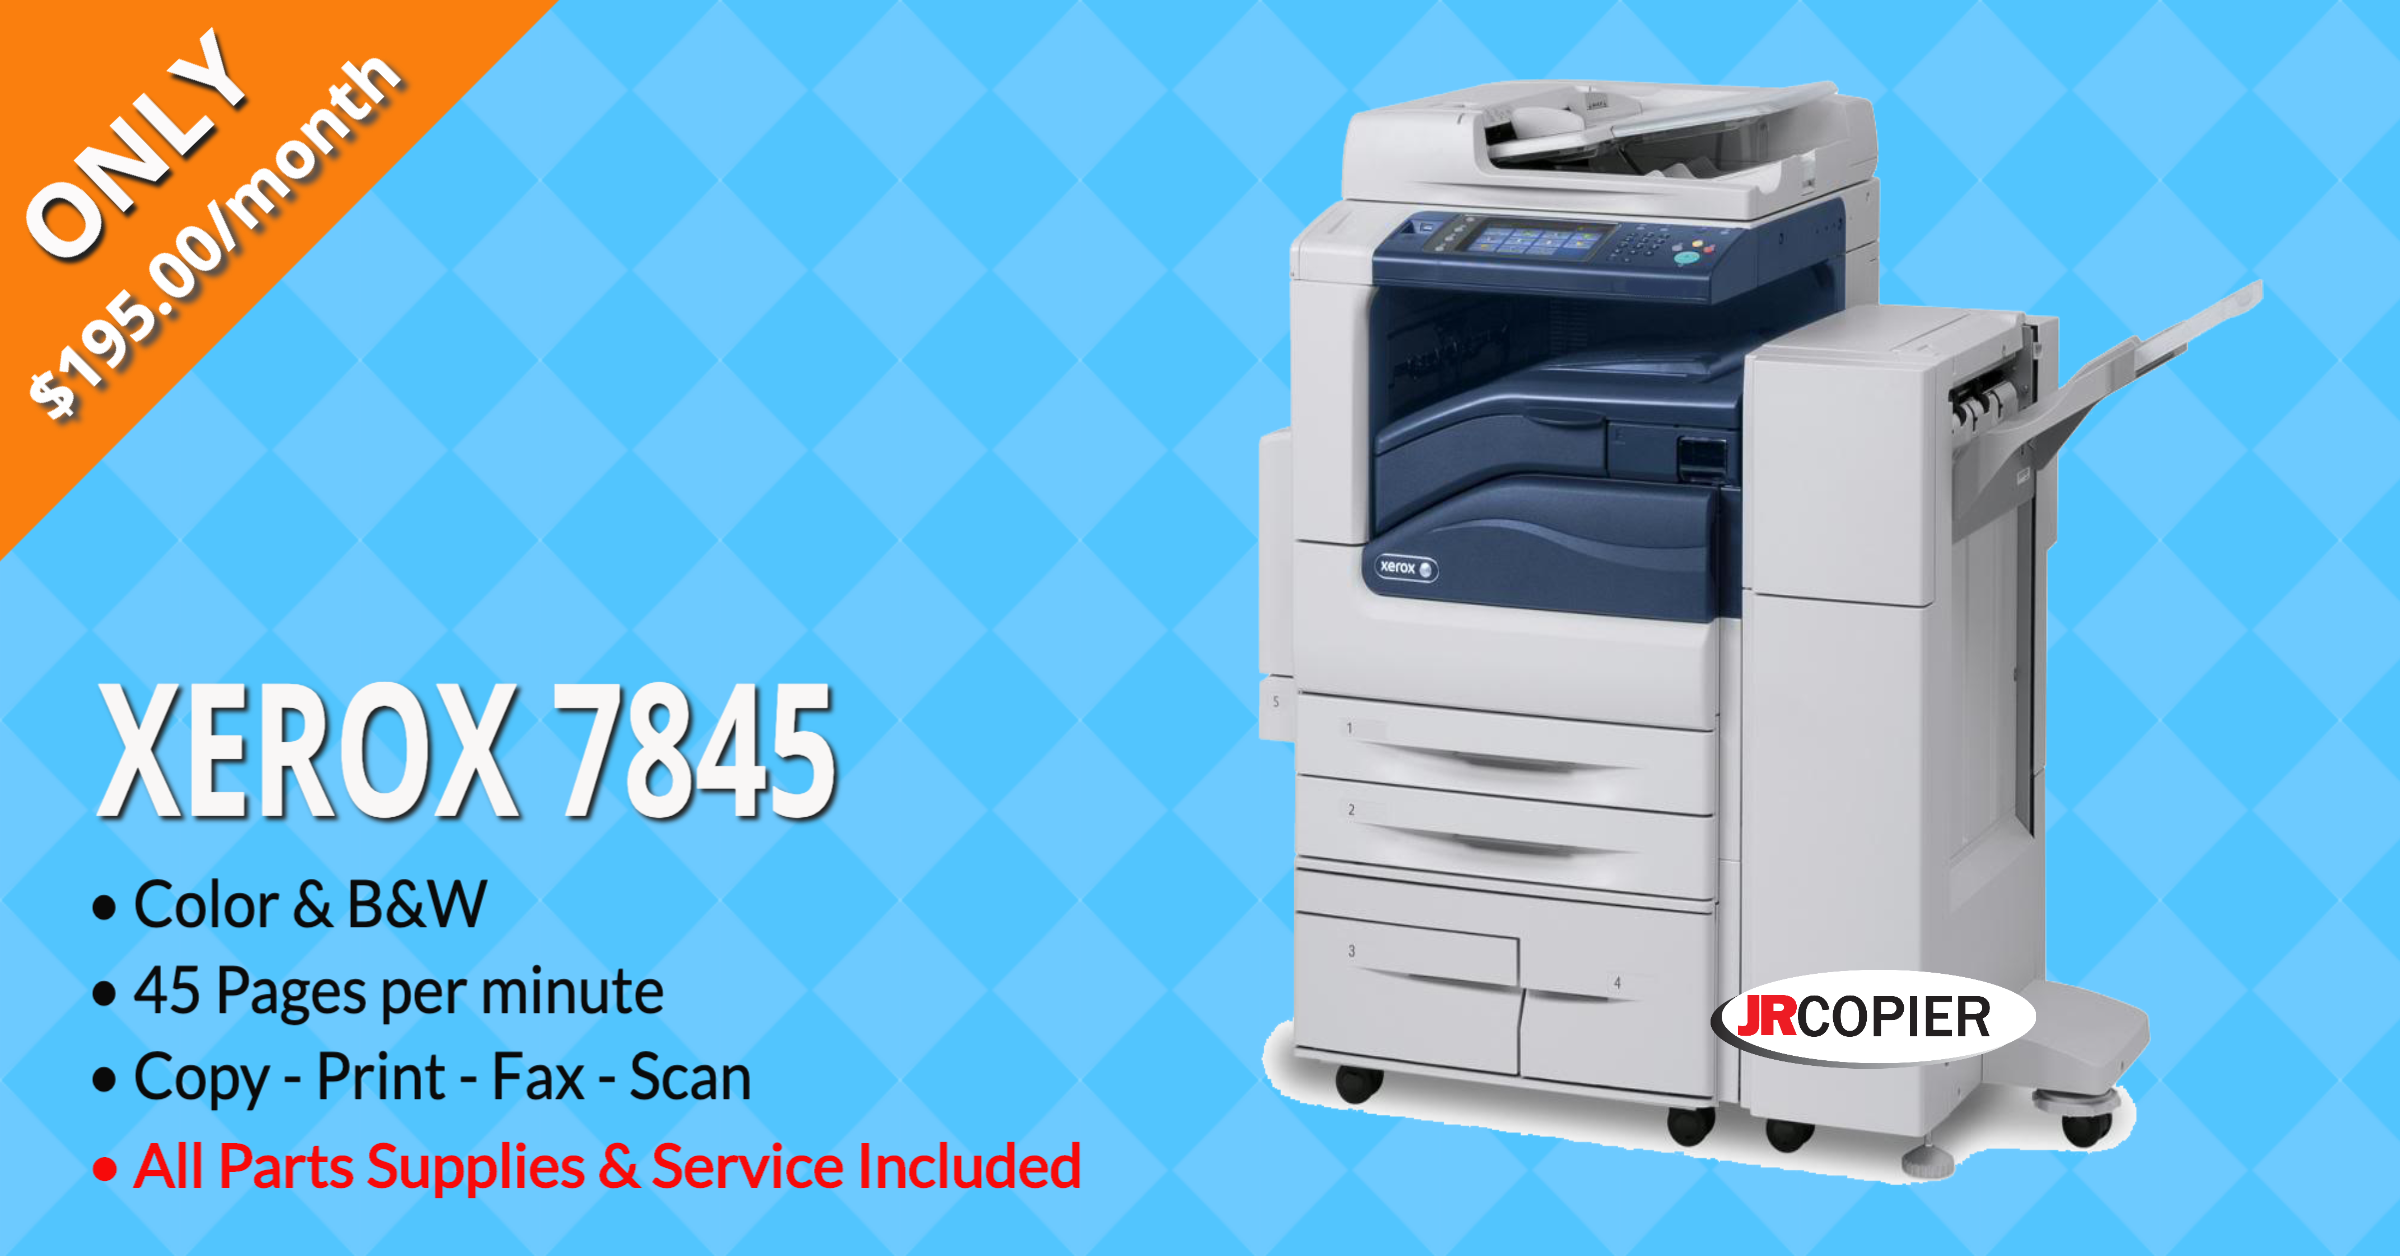 Copy Machine Rental 91324, 91325, 91327, 91328, 91329, 91330